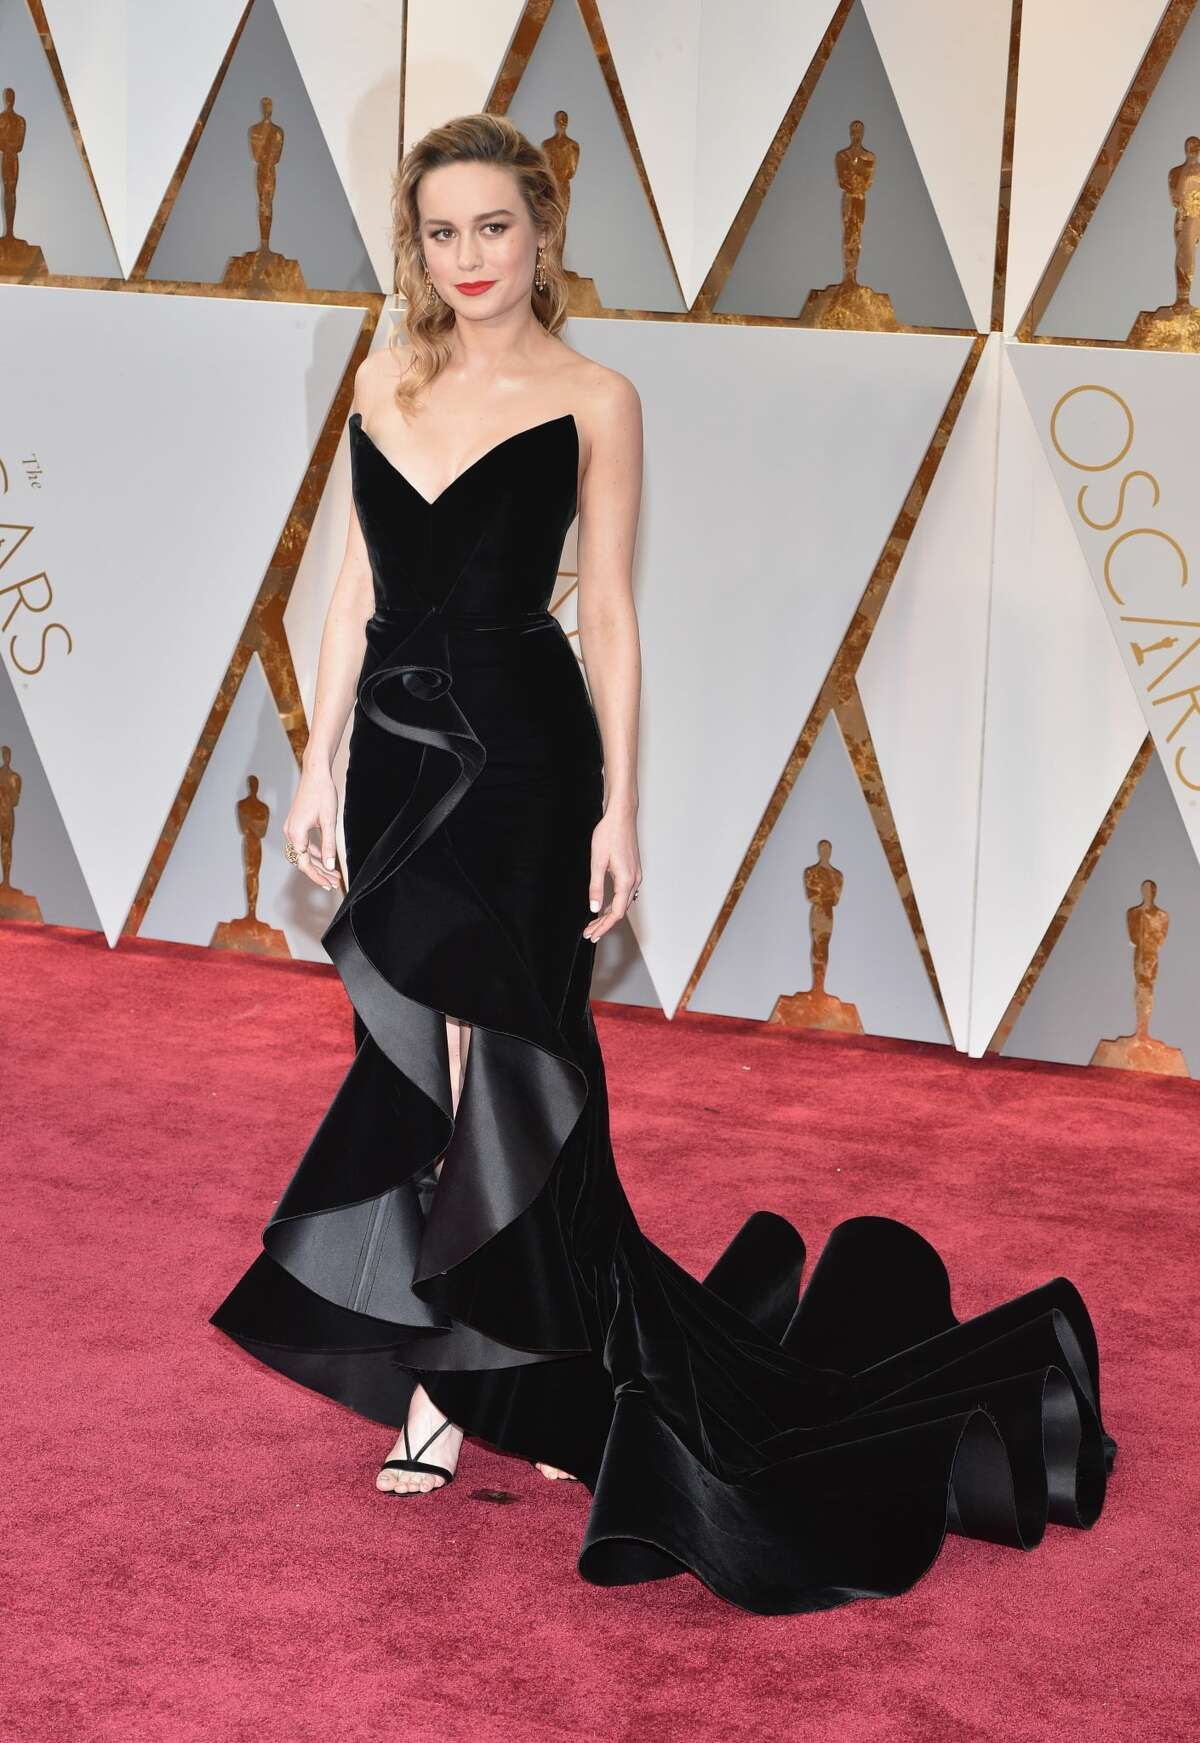 Best:Can not get over Brie Larson's vampy look and the structure of this dress is seriously... goals.